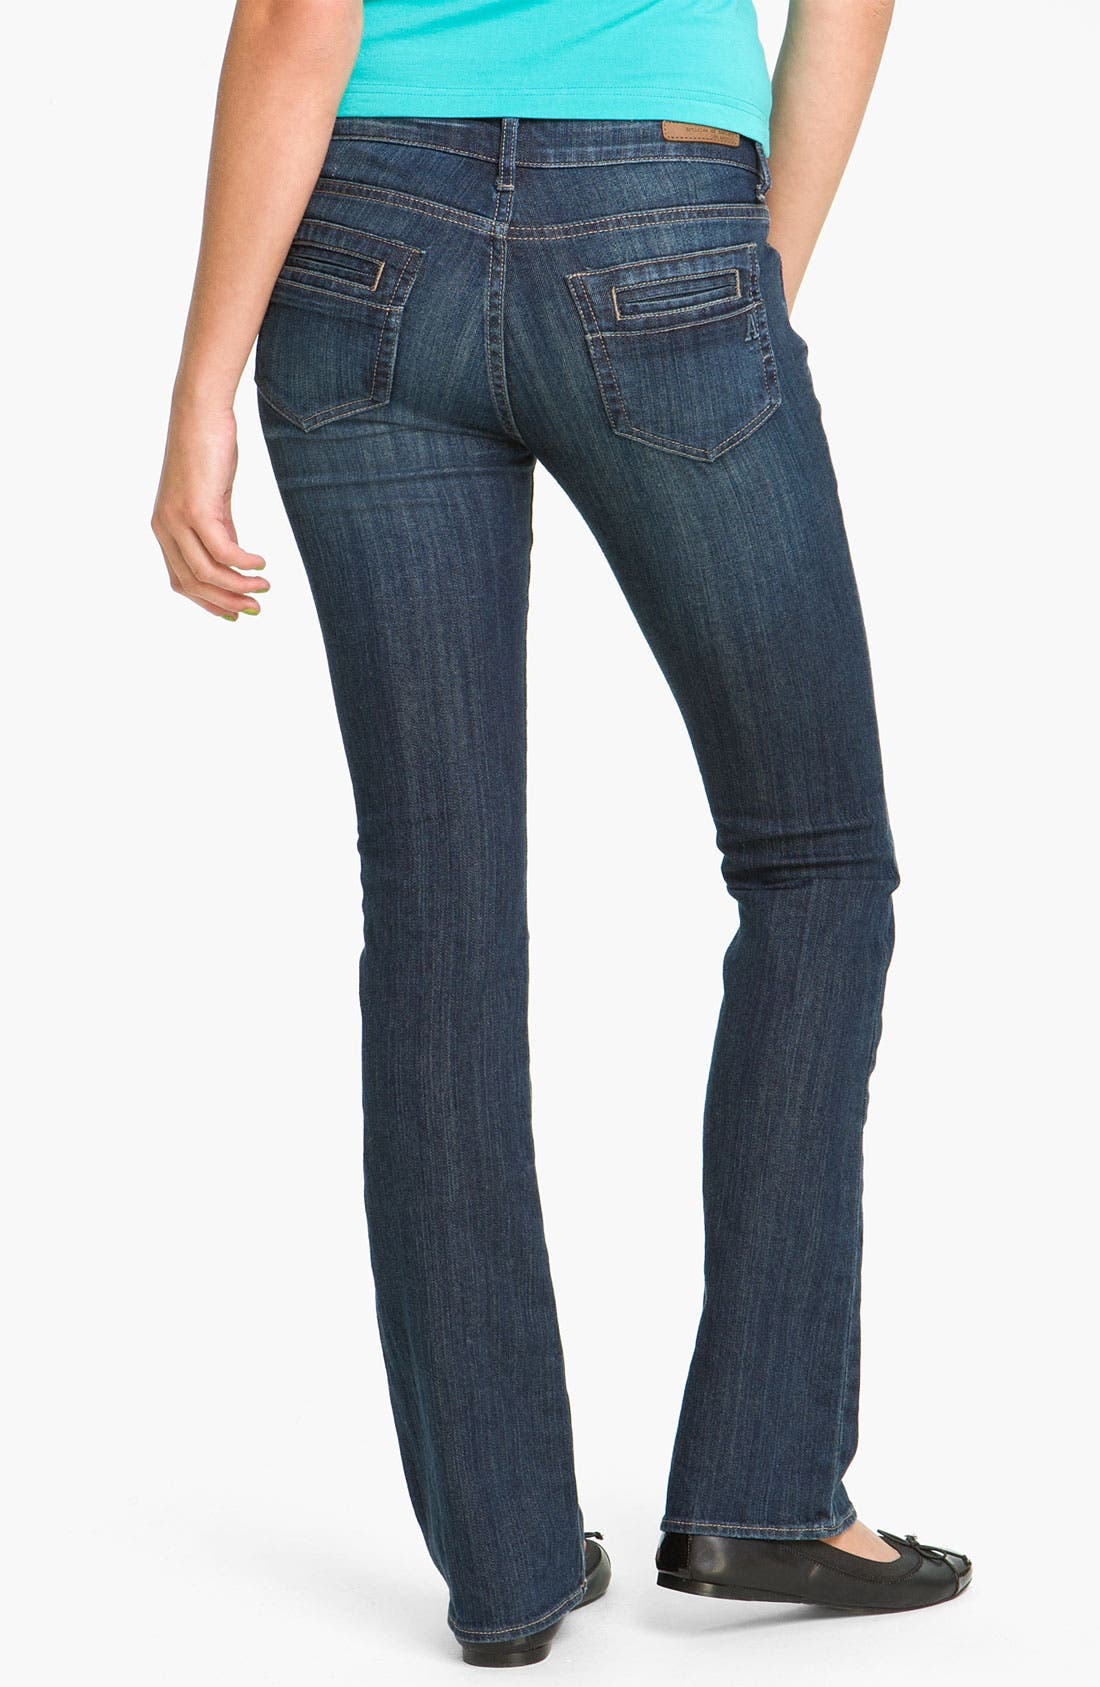 Alternate Image 1 Selected - Articles of Society 'Kendra' Bootcut Jeans (Topaz) (Juniors)